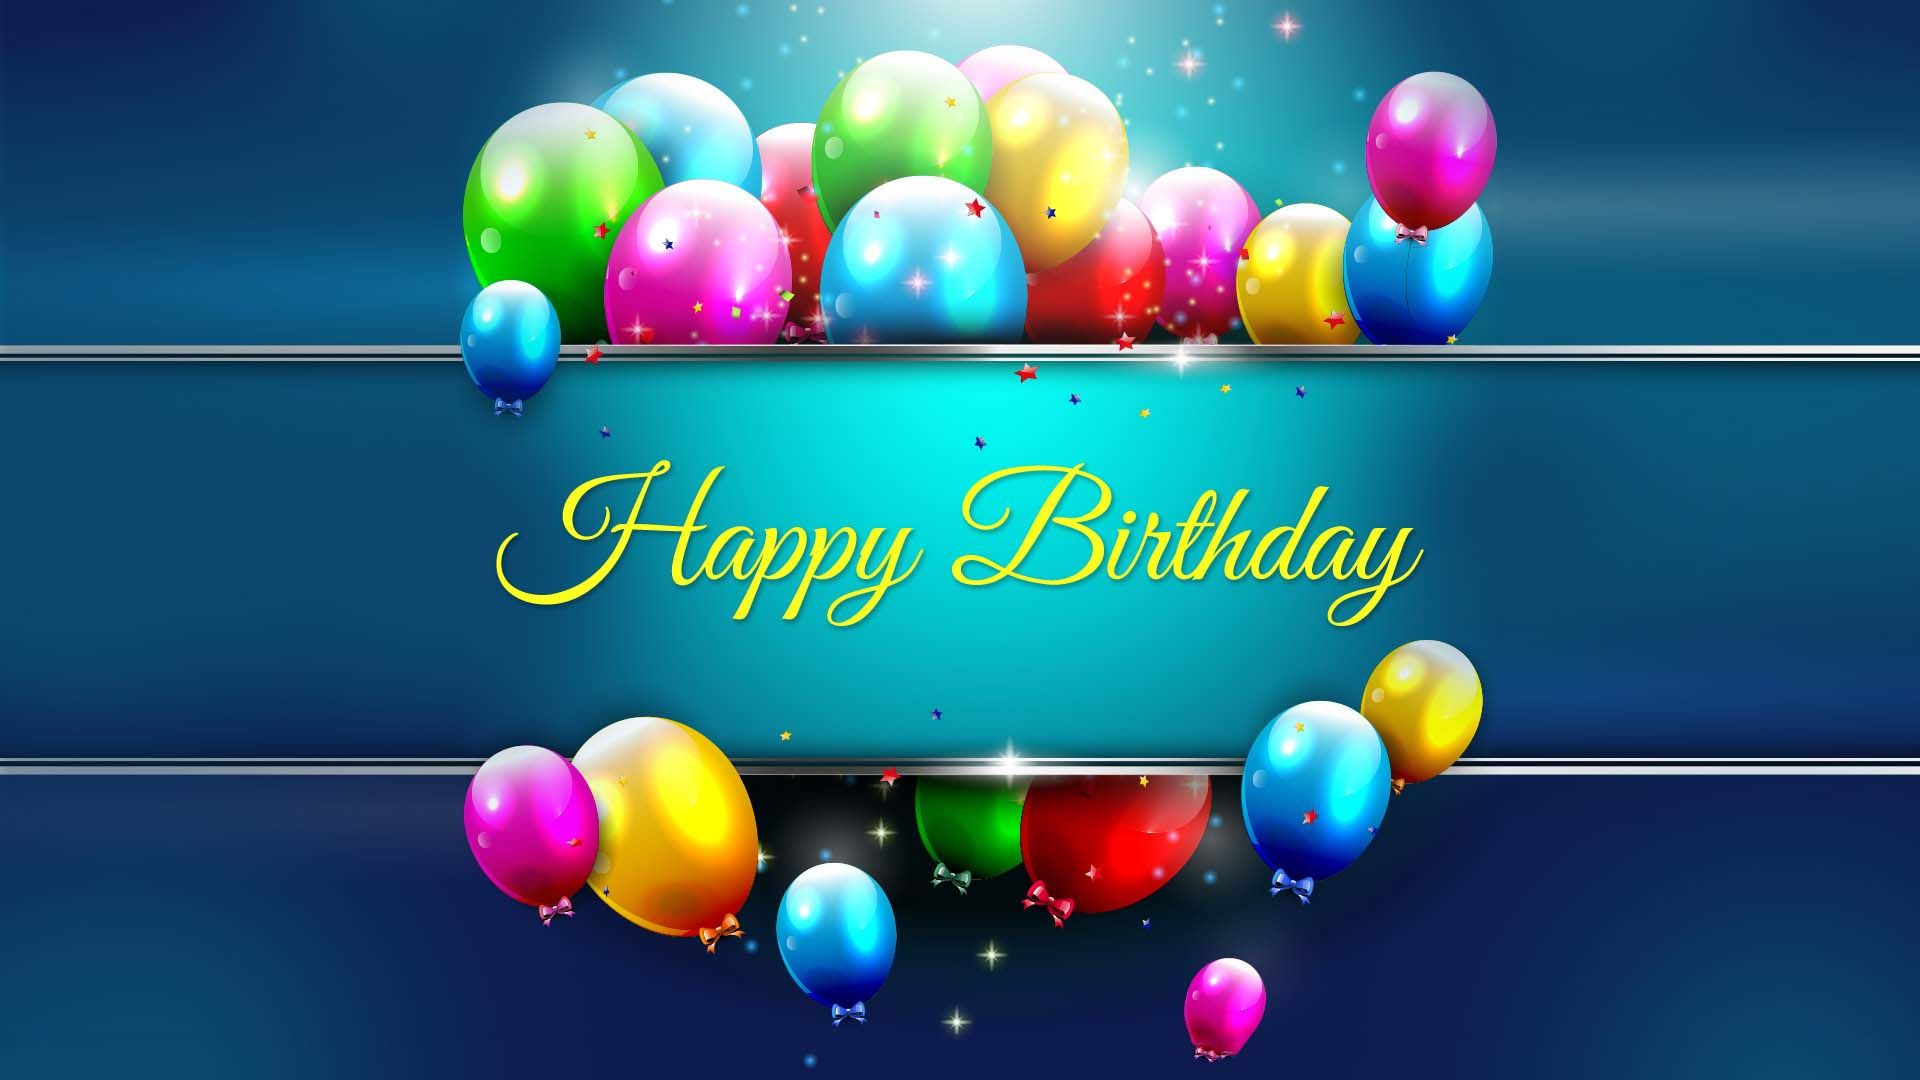 birthday wishes background wallpaper ; birthday_wishes_with_balloons_and_glitters